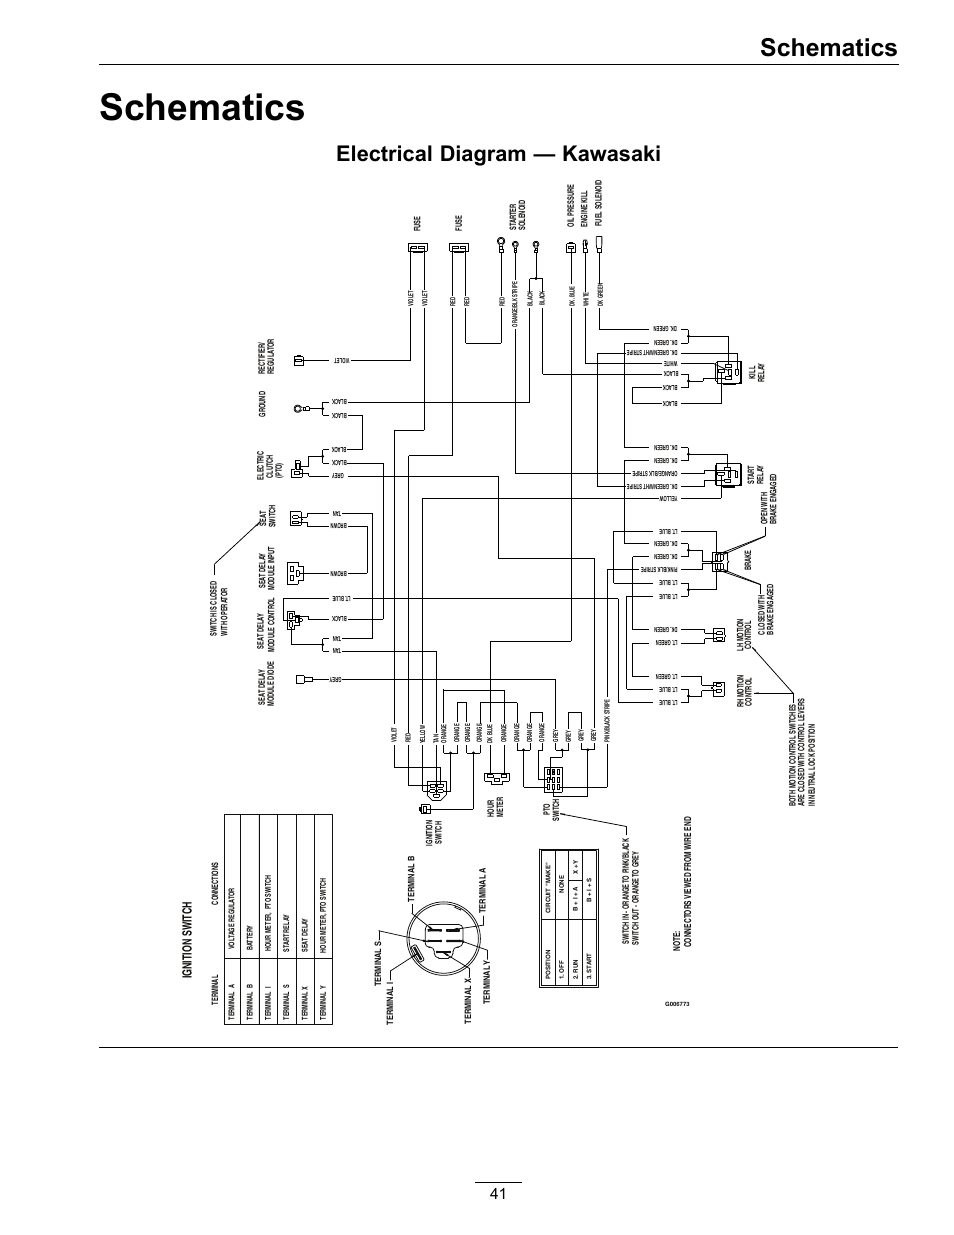 Kawasaki Voltage Regulator Wiring Diagram